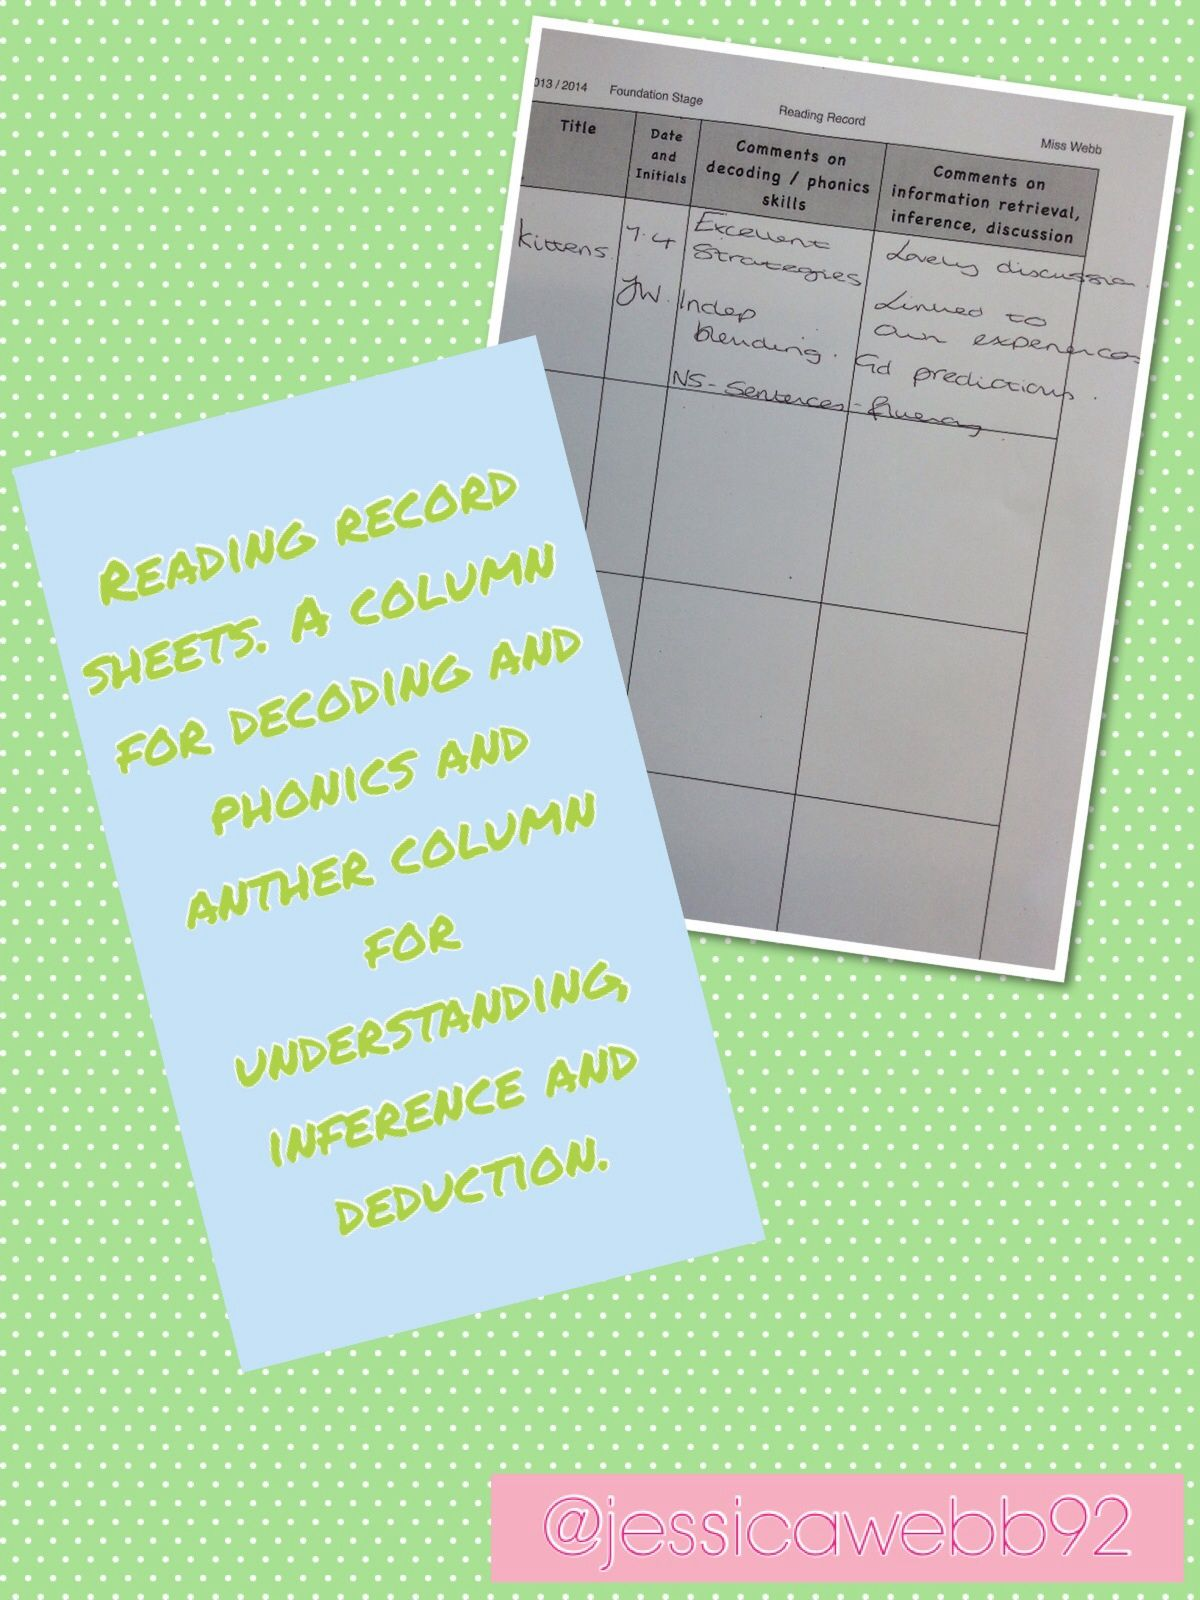 Reading Record Sheets One Column For Comments On Phonics